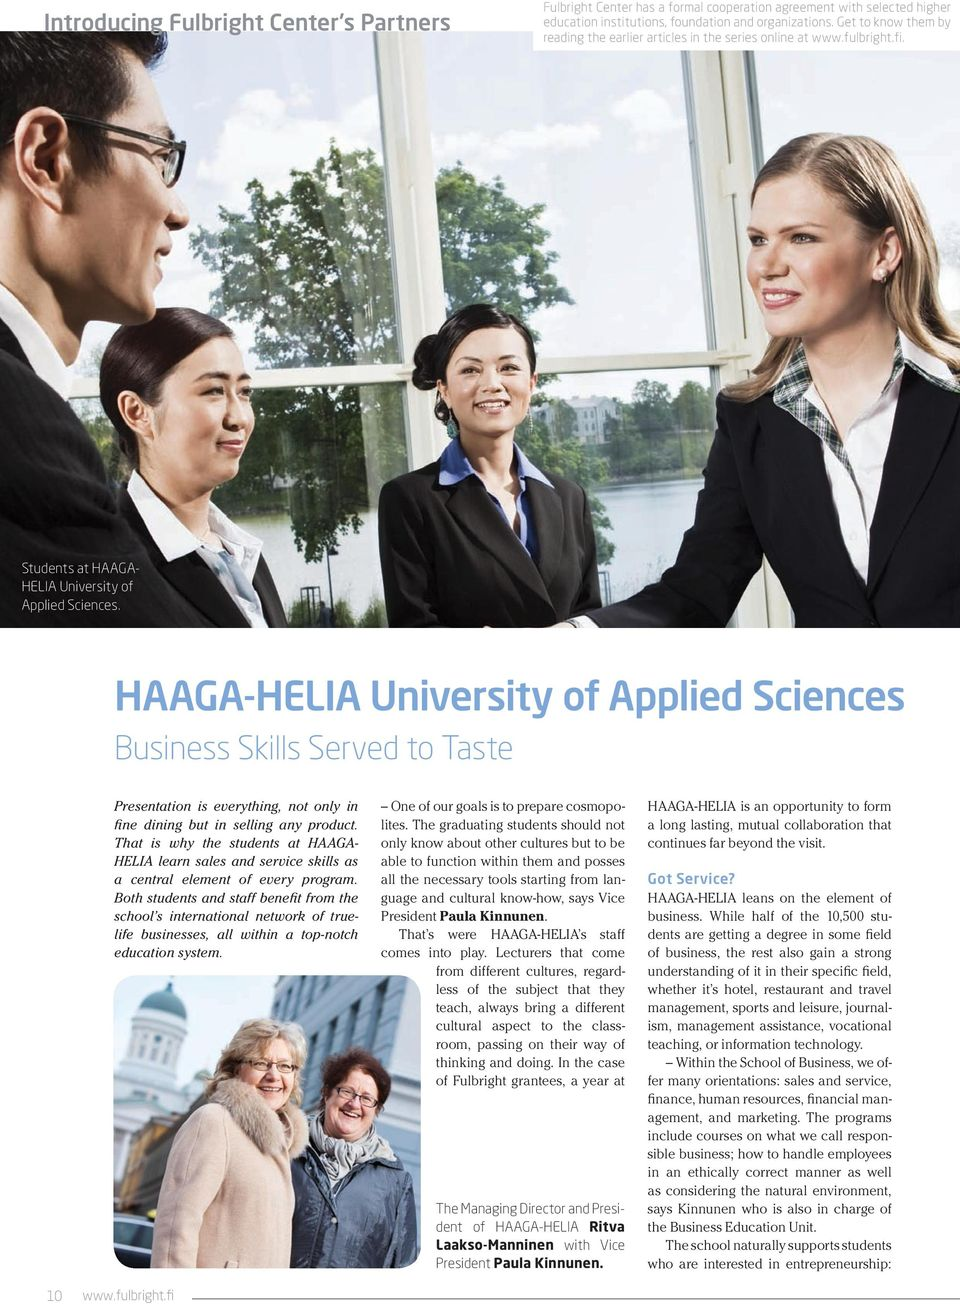 HAAGA-HELIA University of Applied Sciences Business Skills Served to Taste 10 Presentation is everything, not only in fine dining but in selling any product.